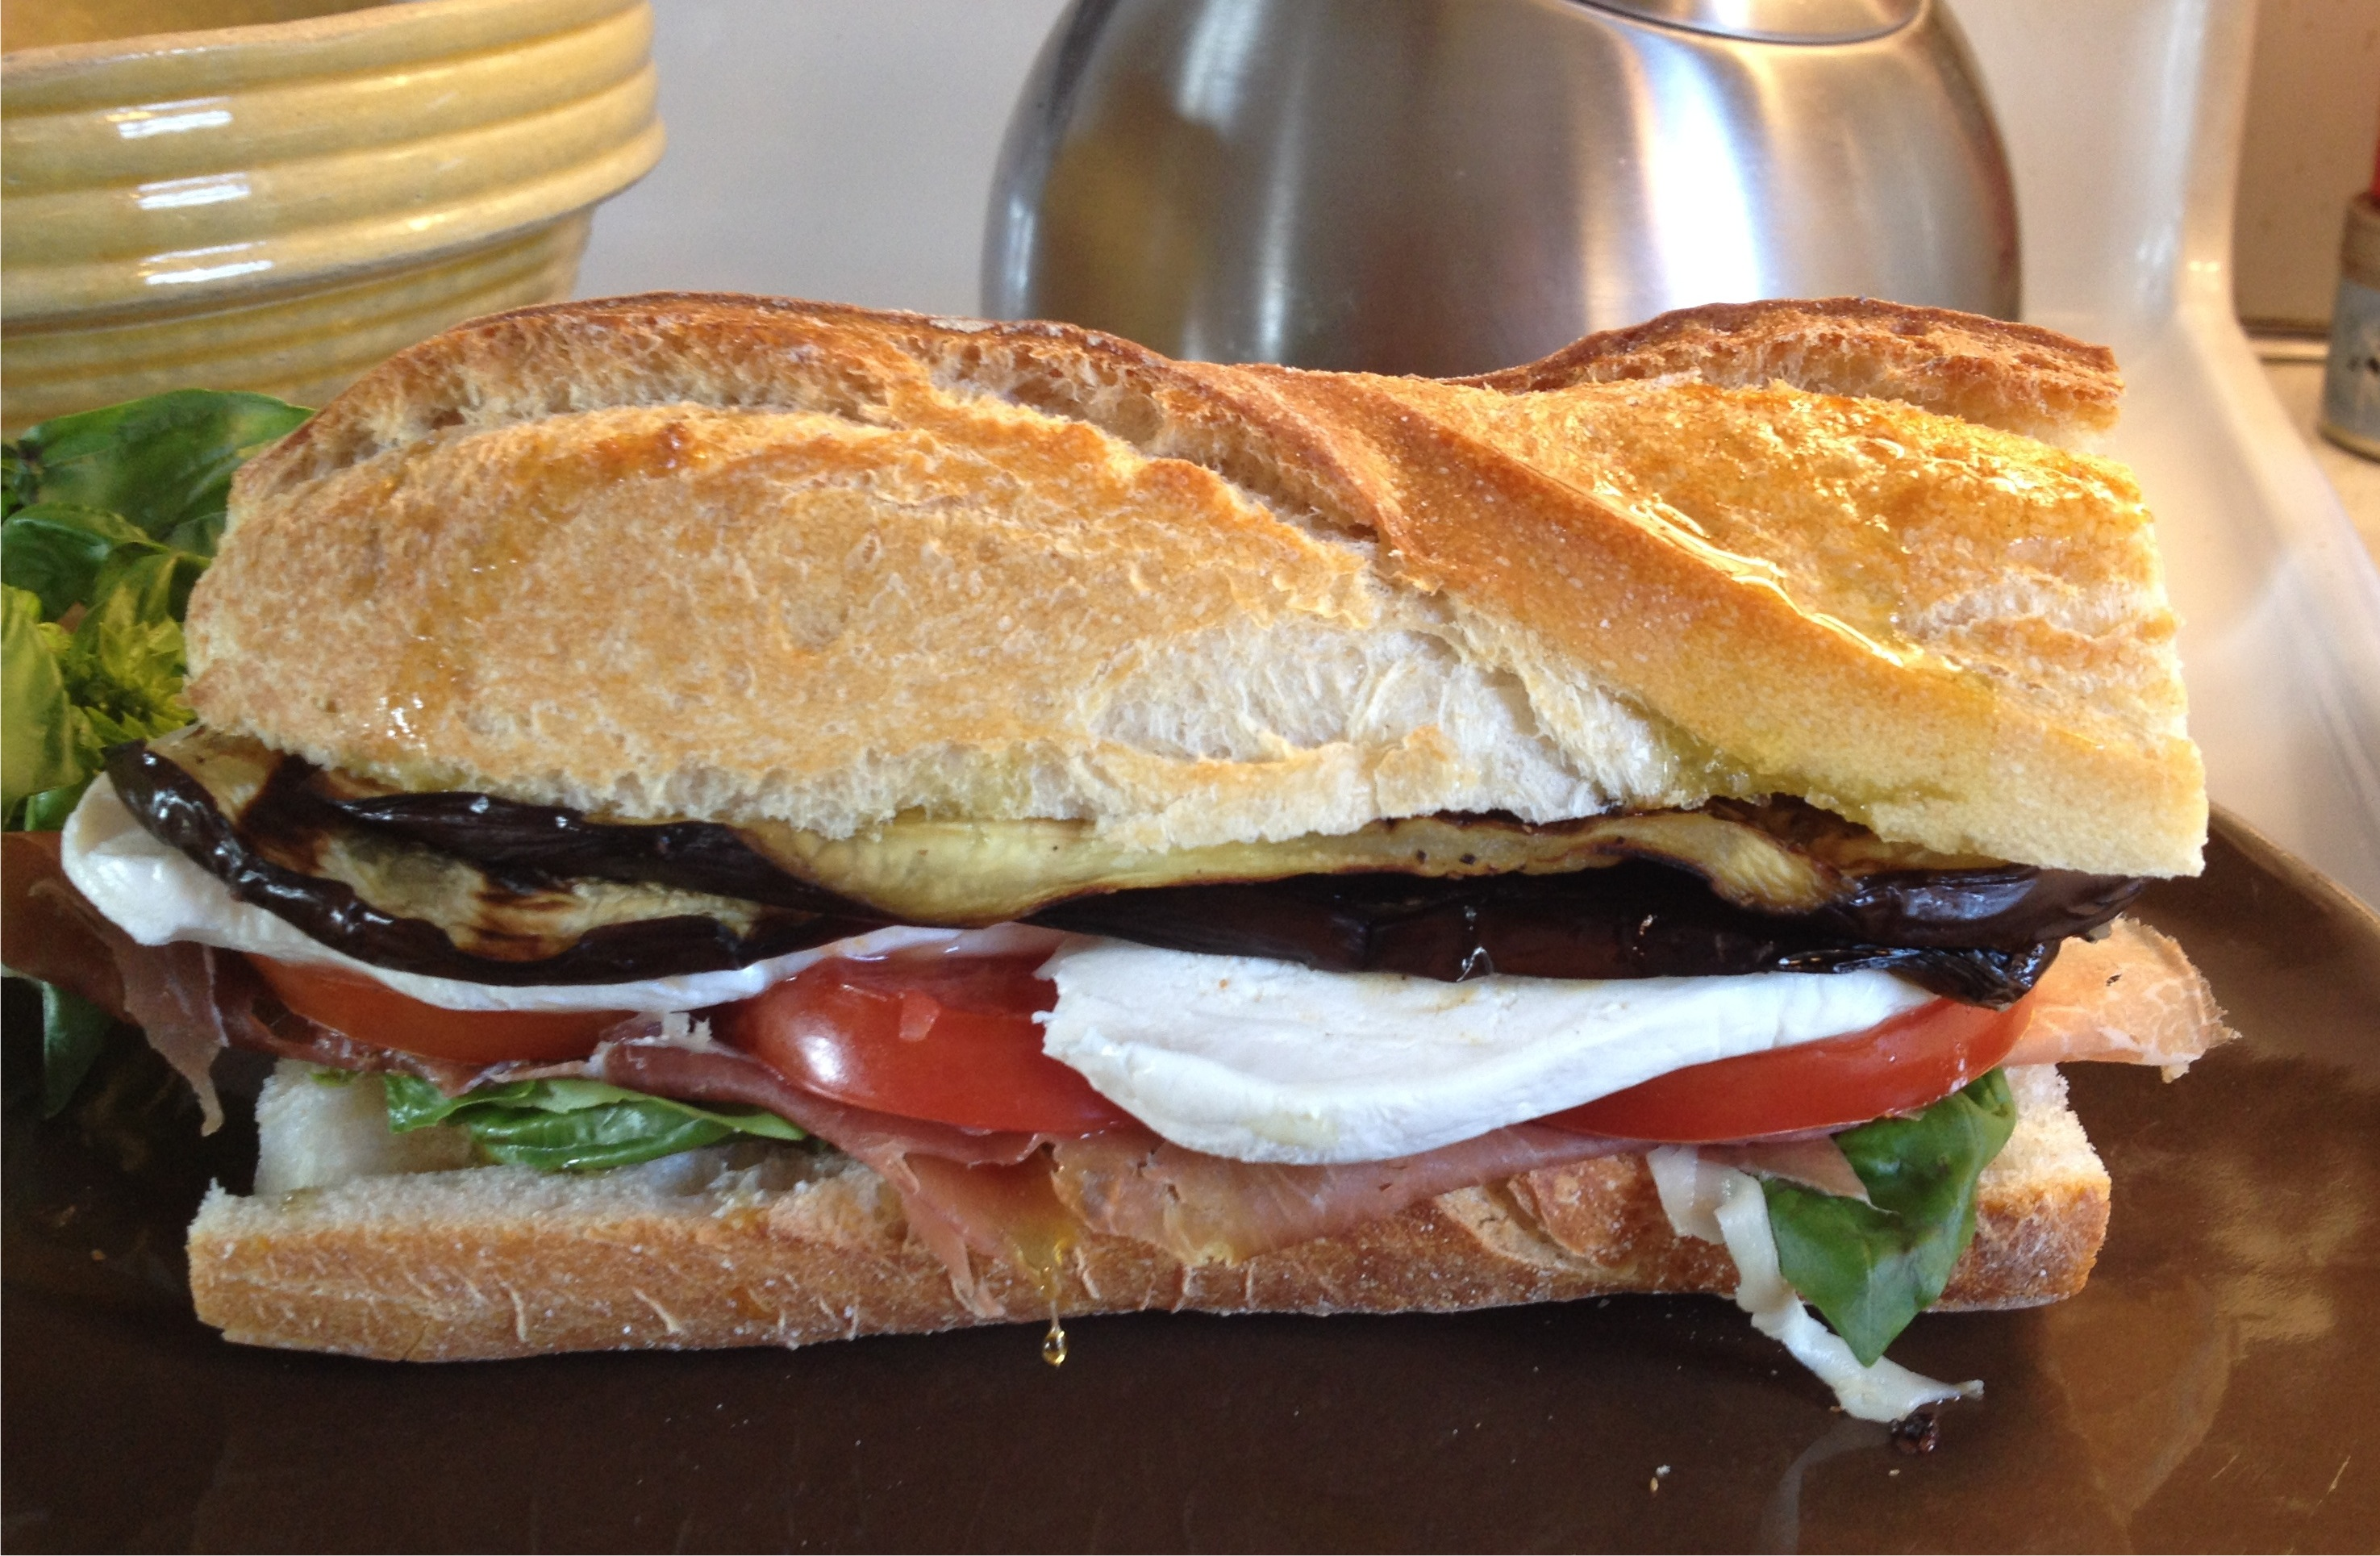 Grilled eggplant sandwich with mozzarella tomato basil and proscuitto